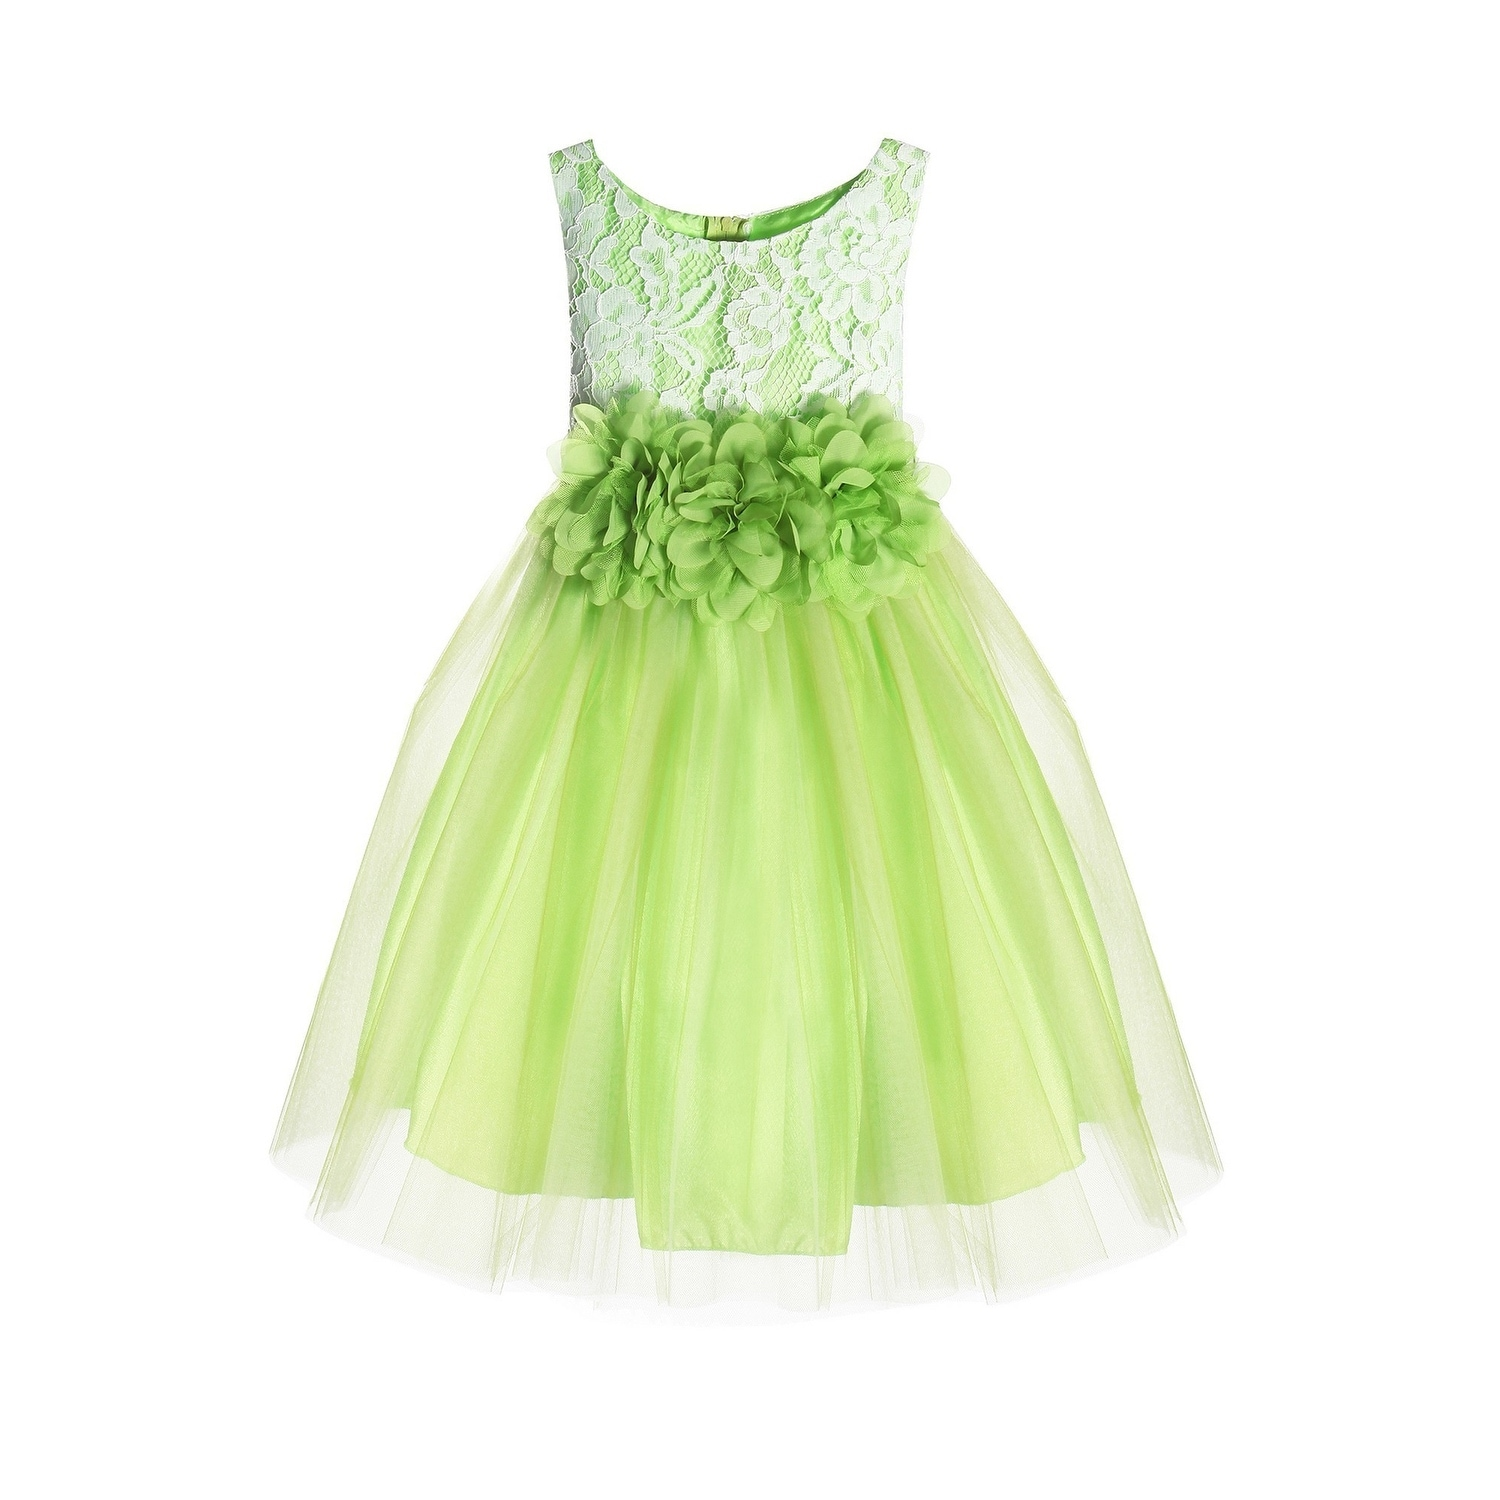 190b44cc691c8 Shop Kids Dream Little Girls Green Floral Lace Illusion Tulle Flower Girl  Dress - Free Shipping On Orders Over $45 - Overstock - 23078842